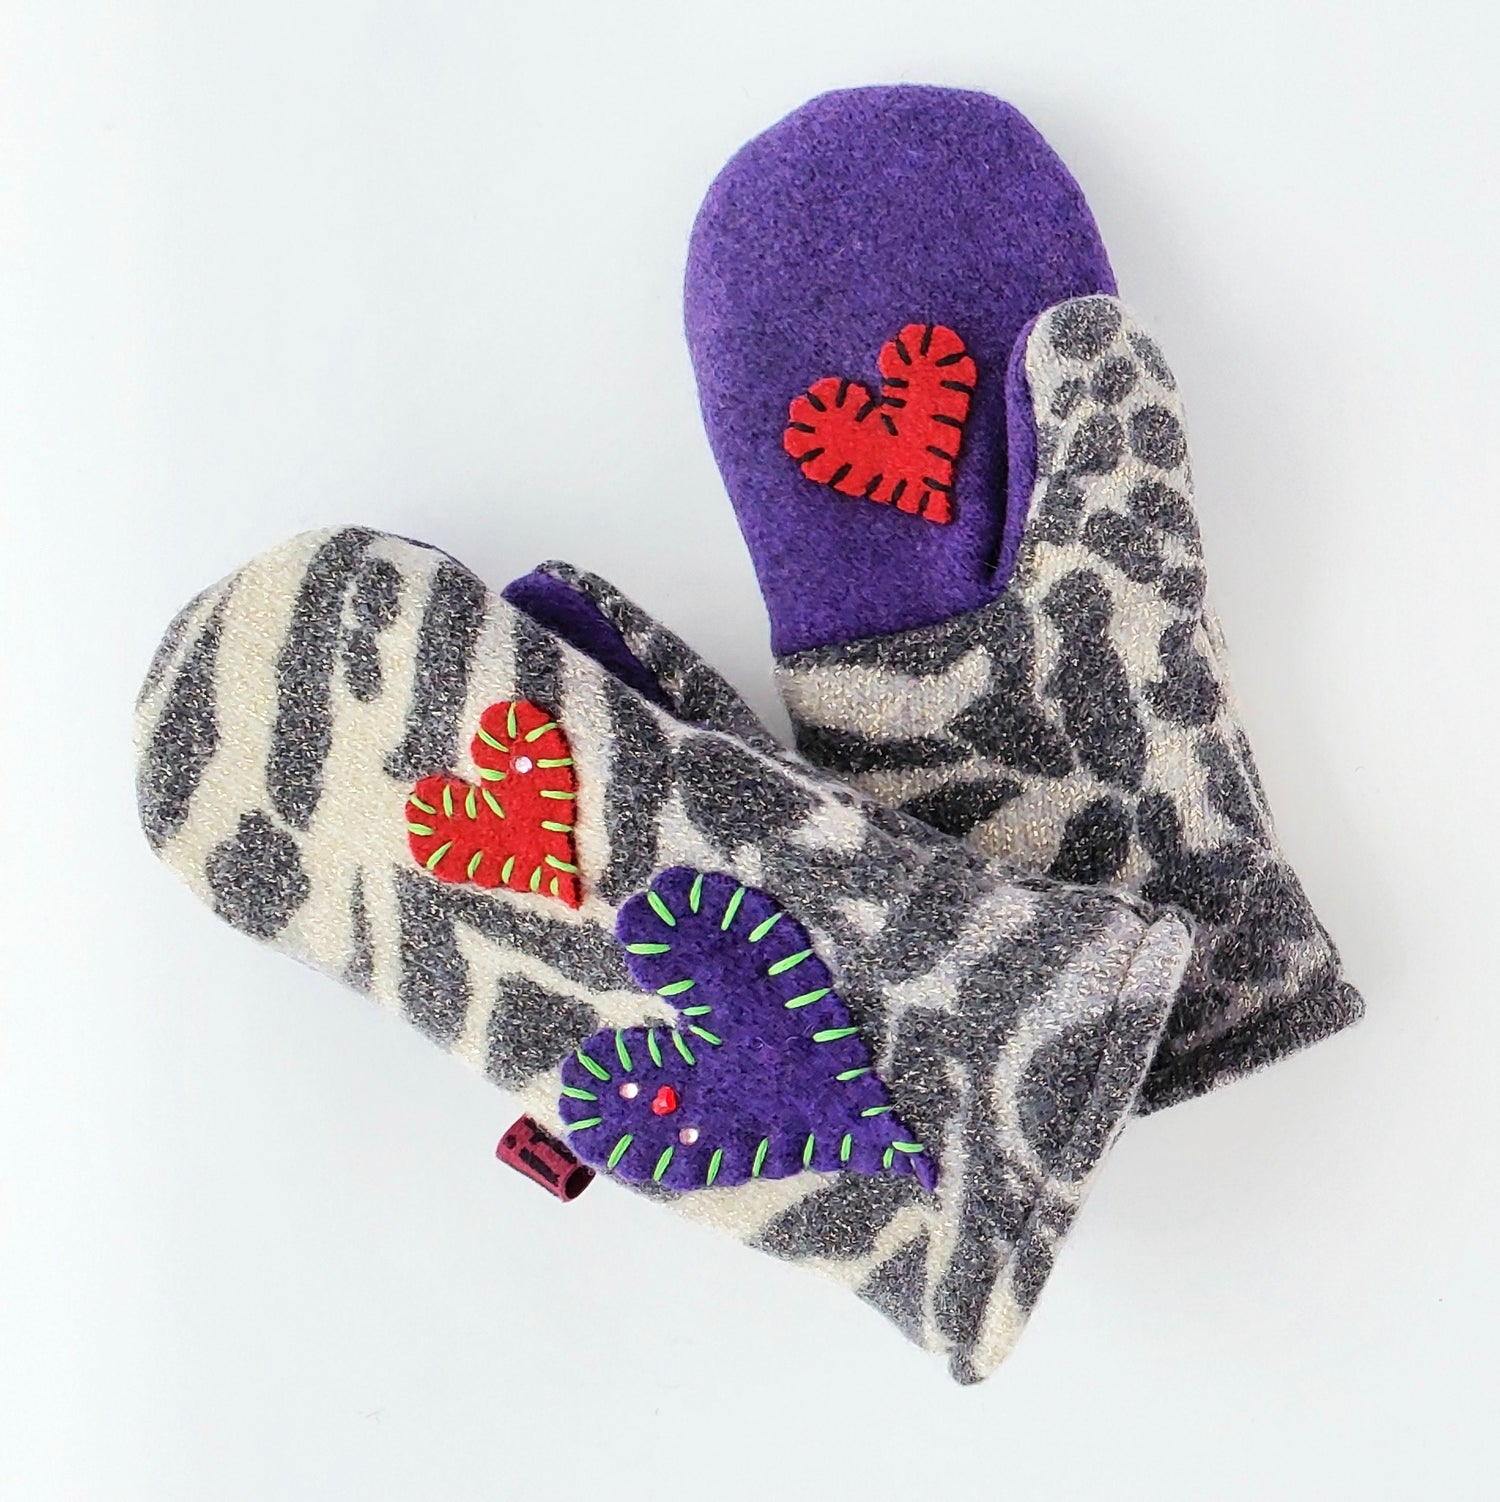 Image of 2020 Edit Repurposed Wool Sweater Mittens- Animal Print Love